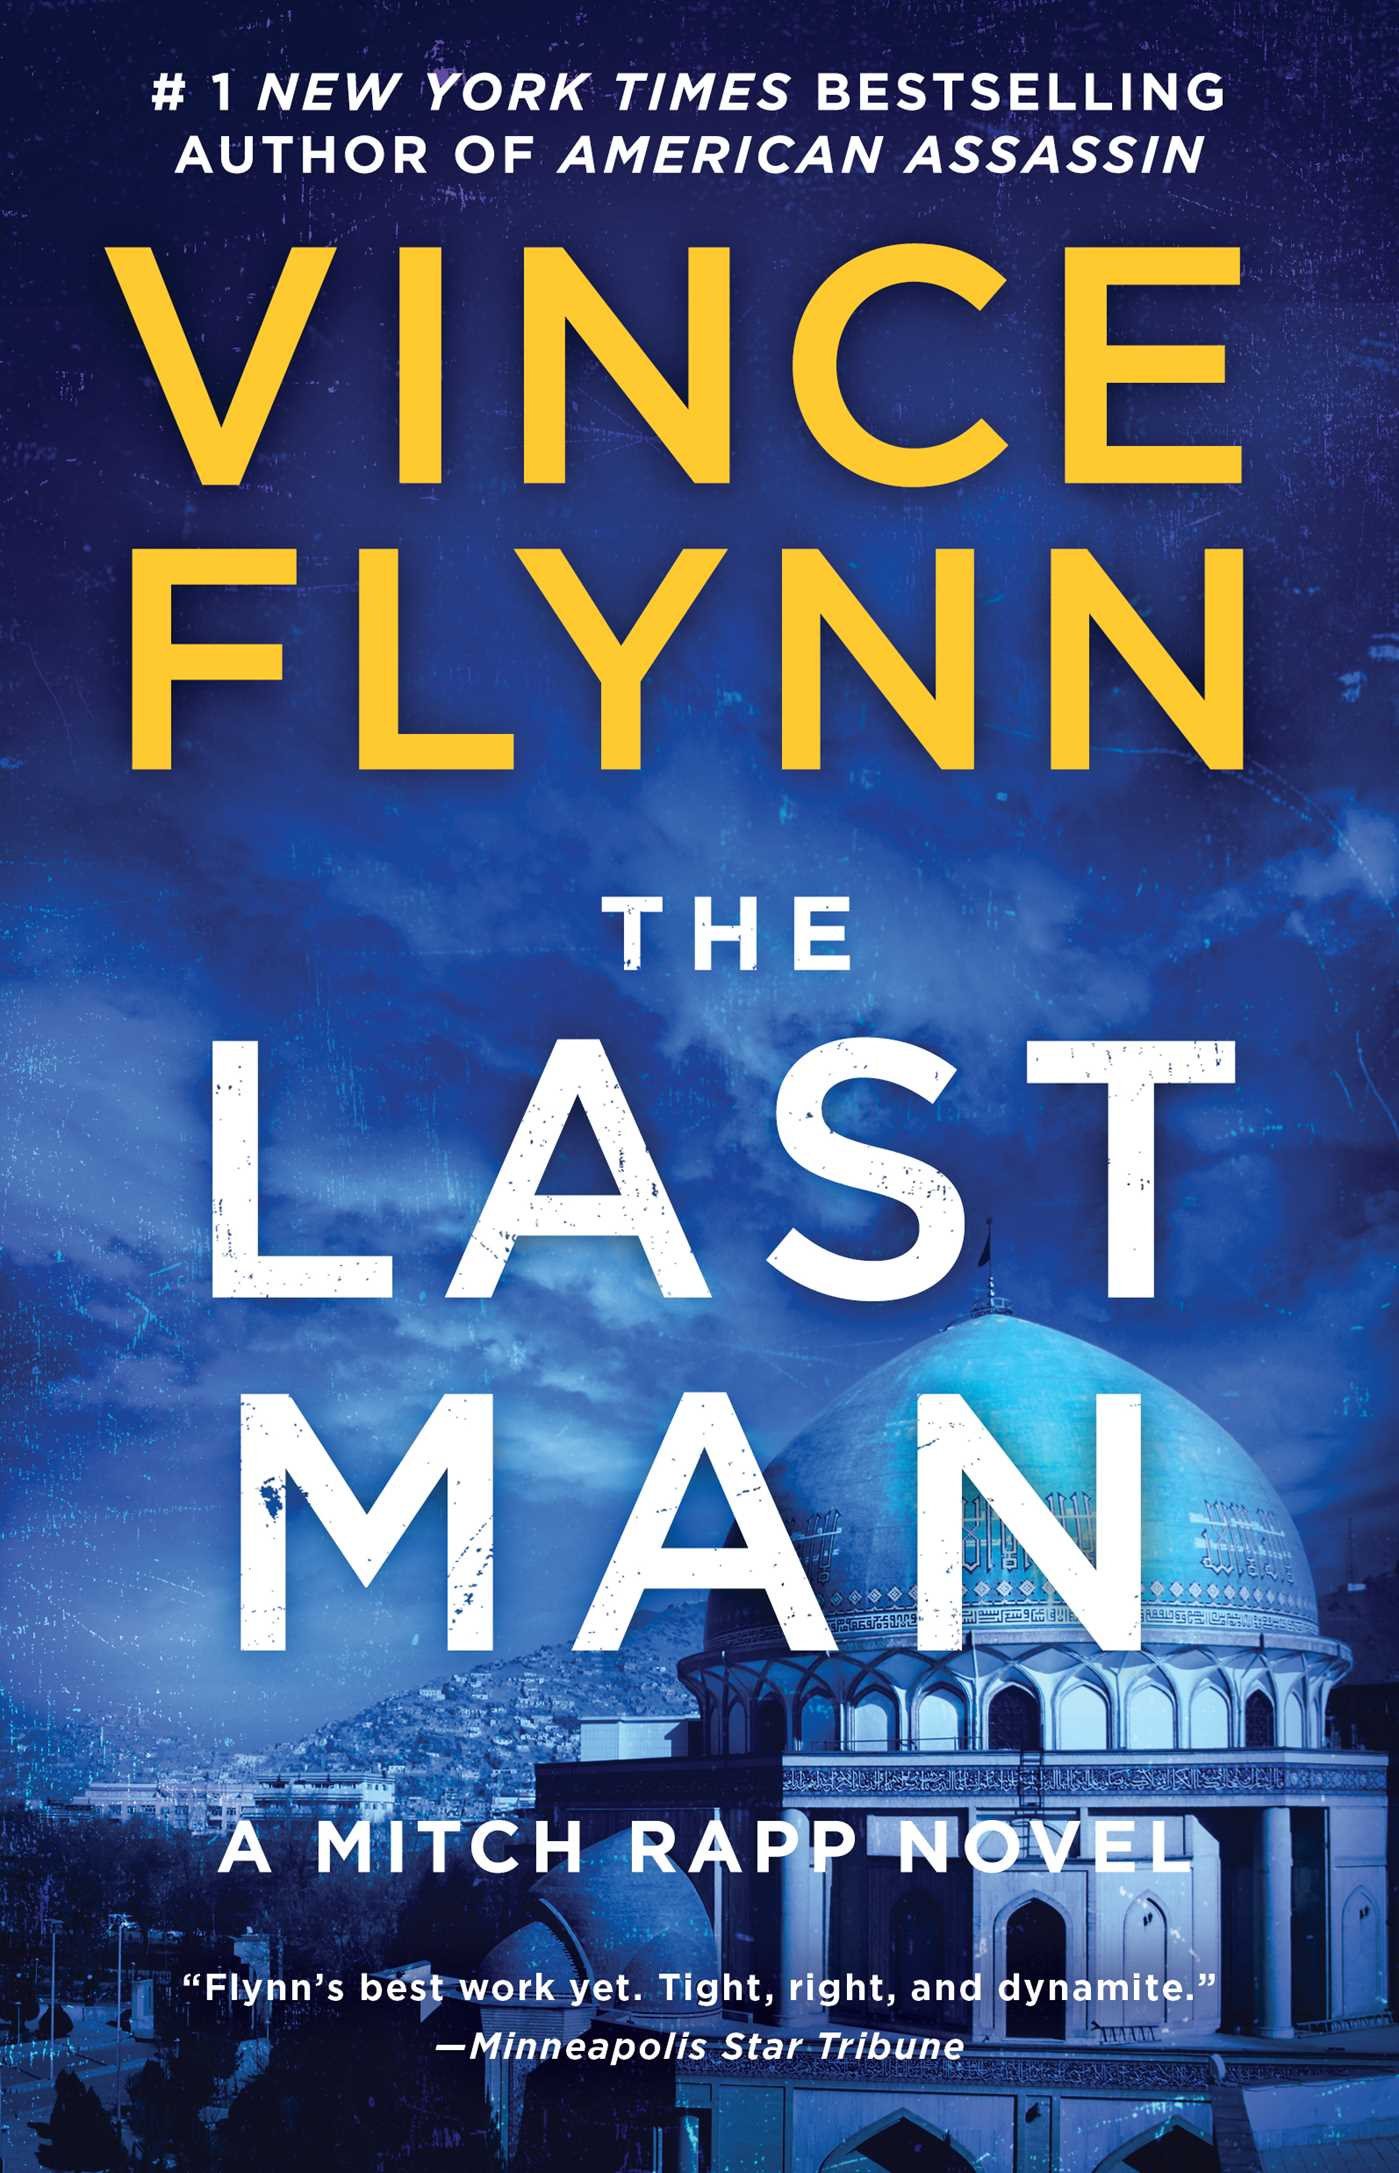 The last man 9781439100530 hr